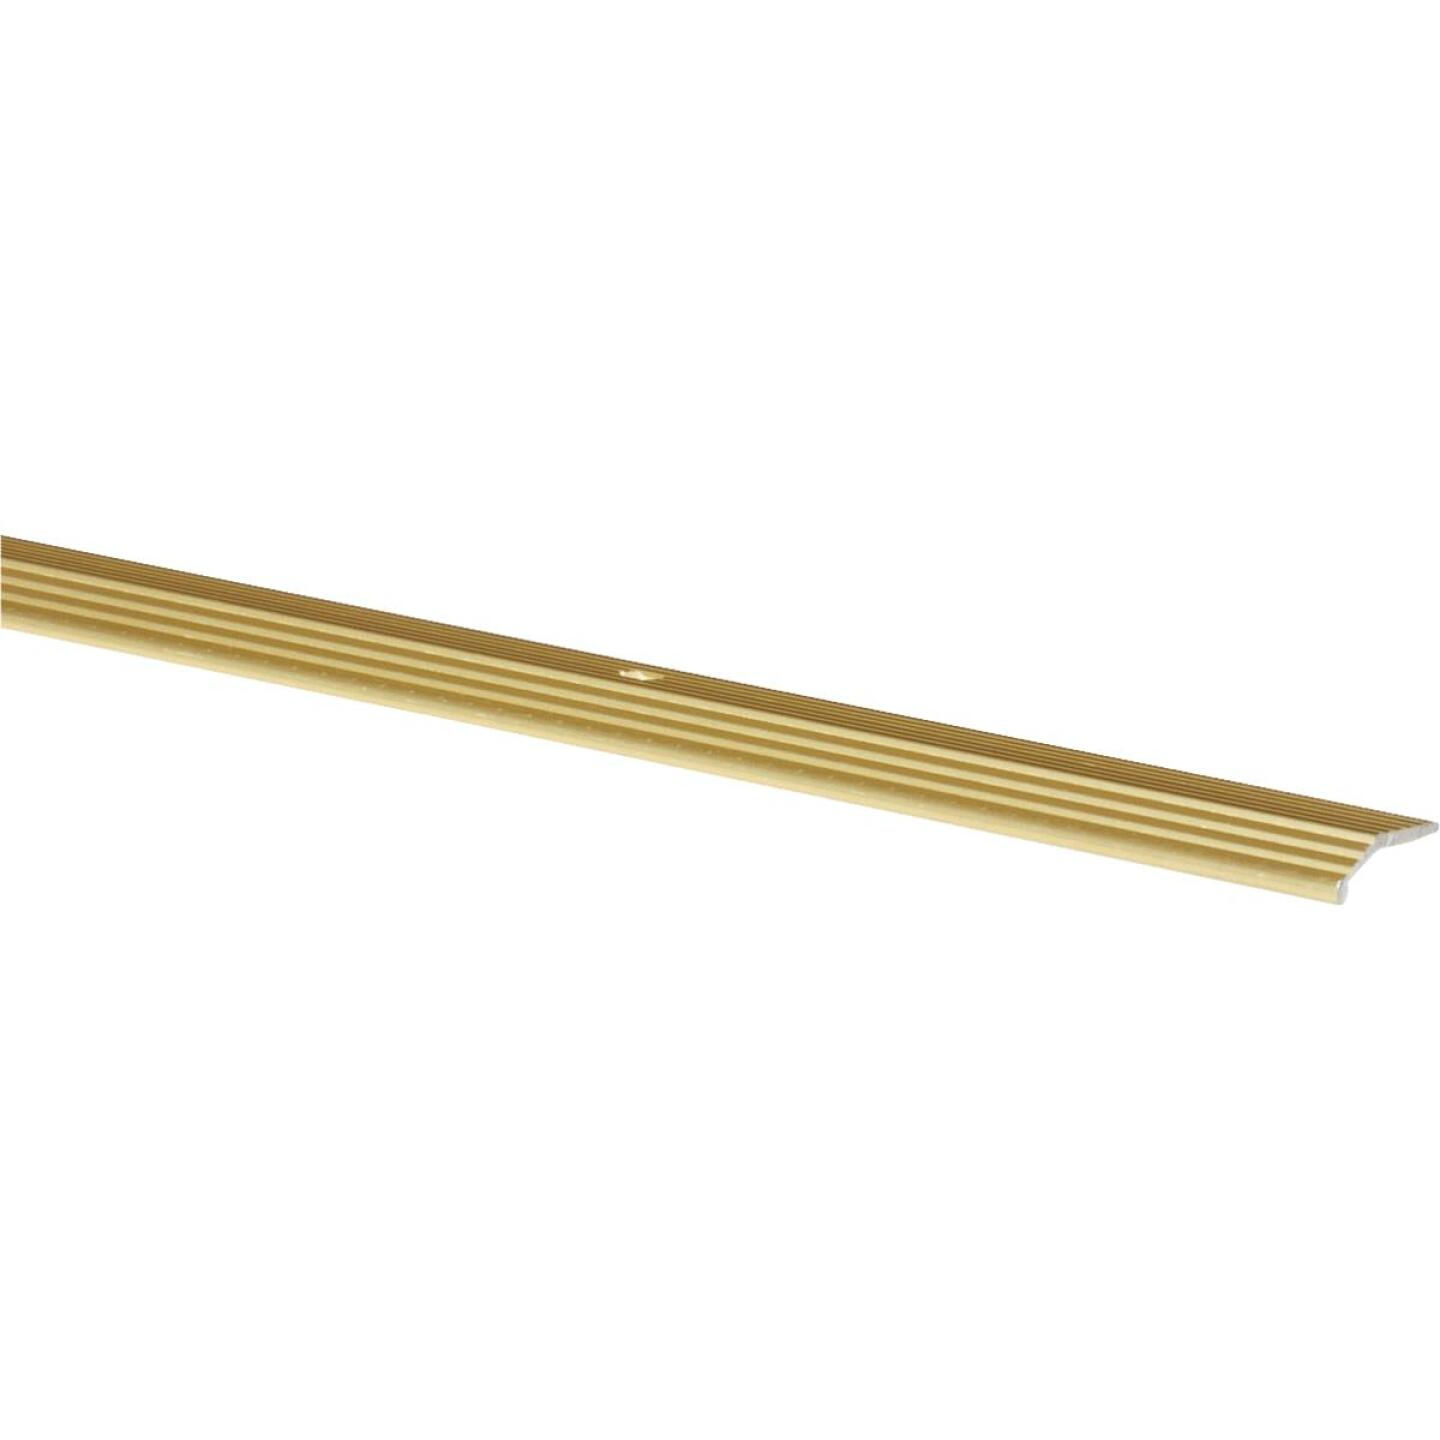 Do it Satin Gold Fluted 1 In. x 3 Ft. Aluminum Carpet Trim Bar Image 1